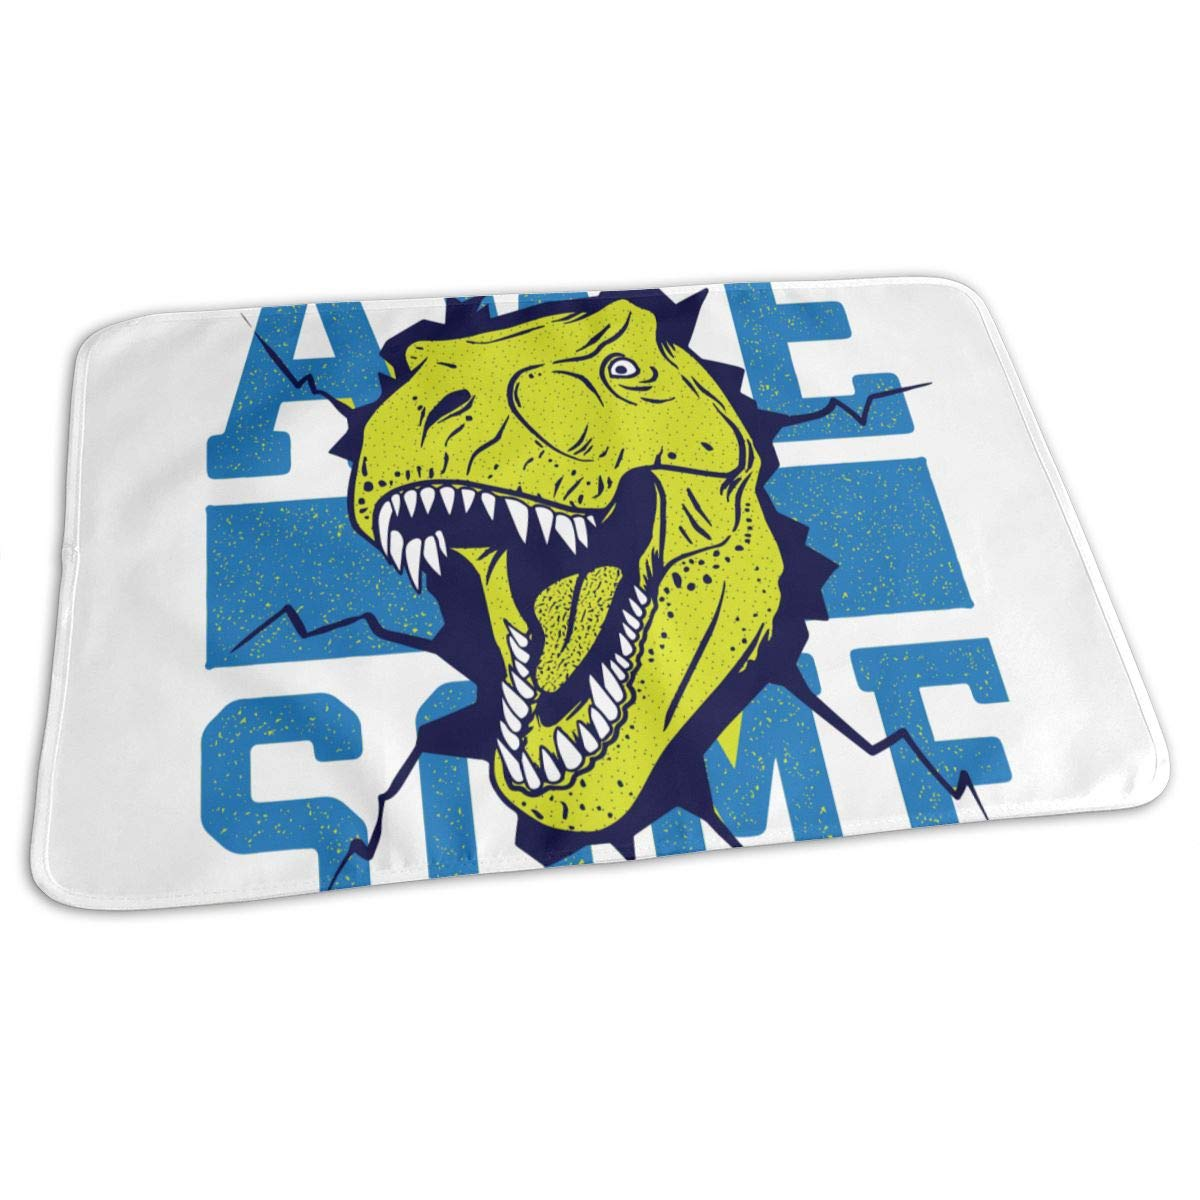 Osvbs Lovely Baby Reusable Waterproof Portable Cartoon's Fierce Tyrannosaurus Rex Changing Pad Home Travel 27.5''x19.7'' by Osvbs